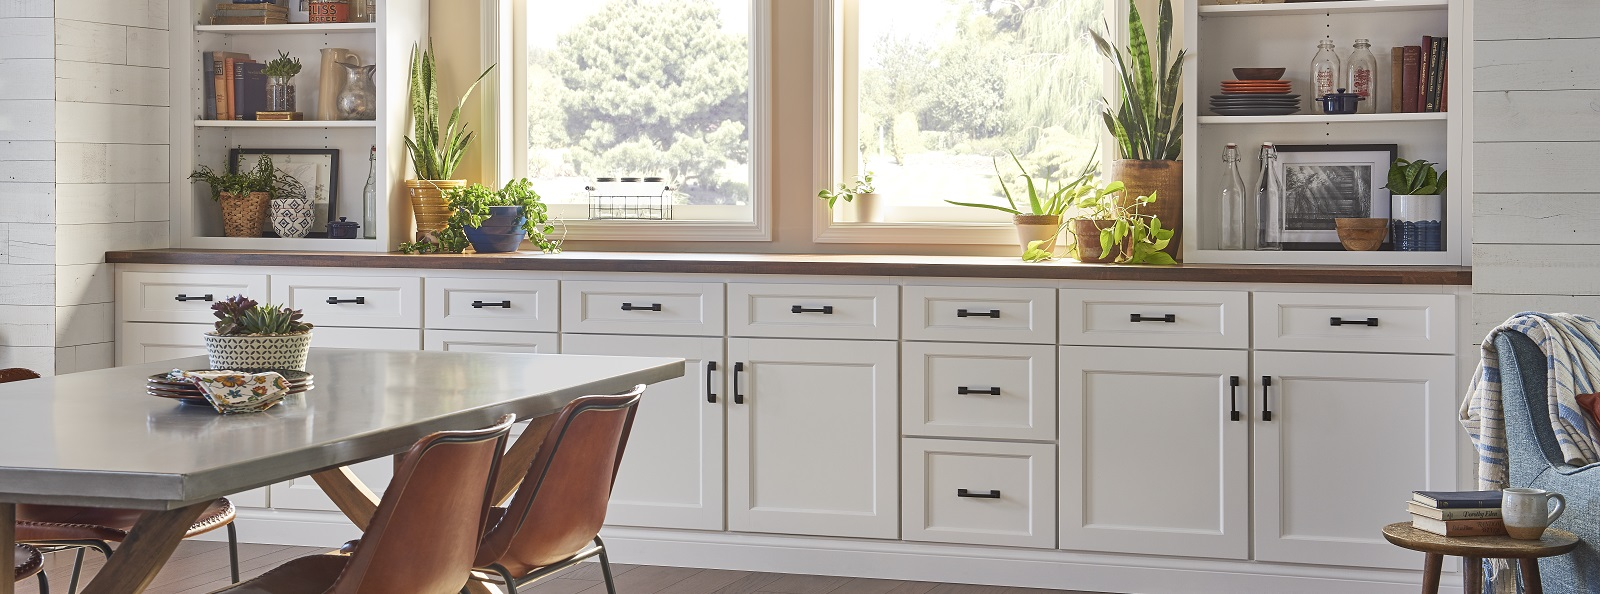 How To Get A Custom Look Kitchen Using Stock Cabinets Wolf Home Products